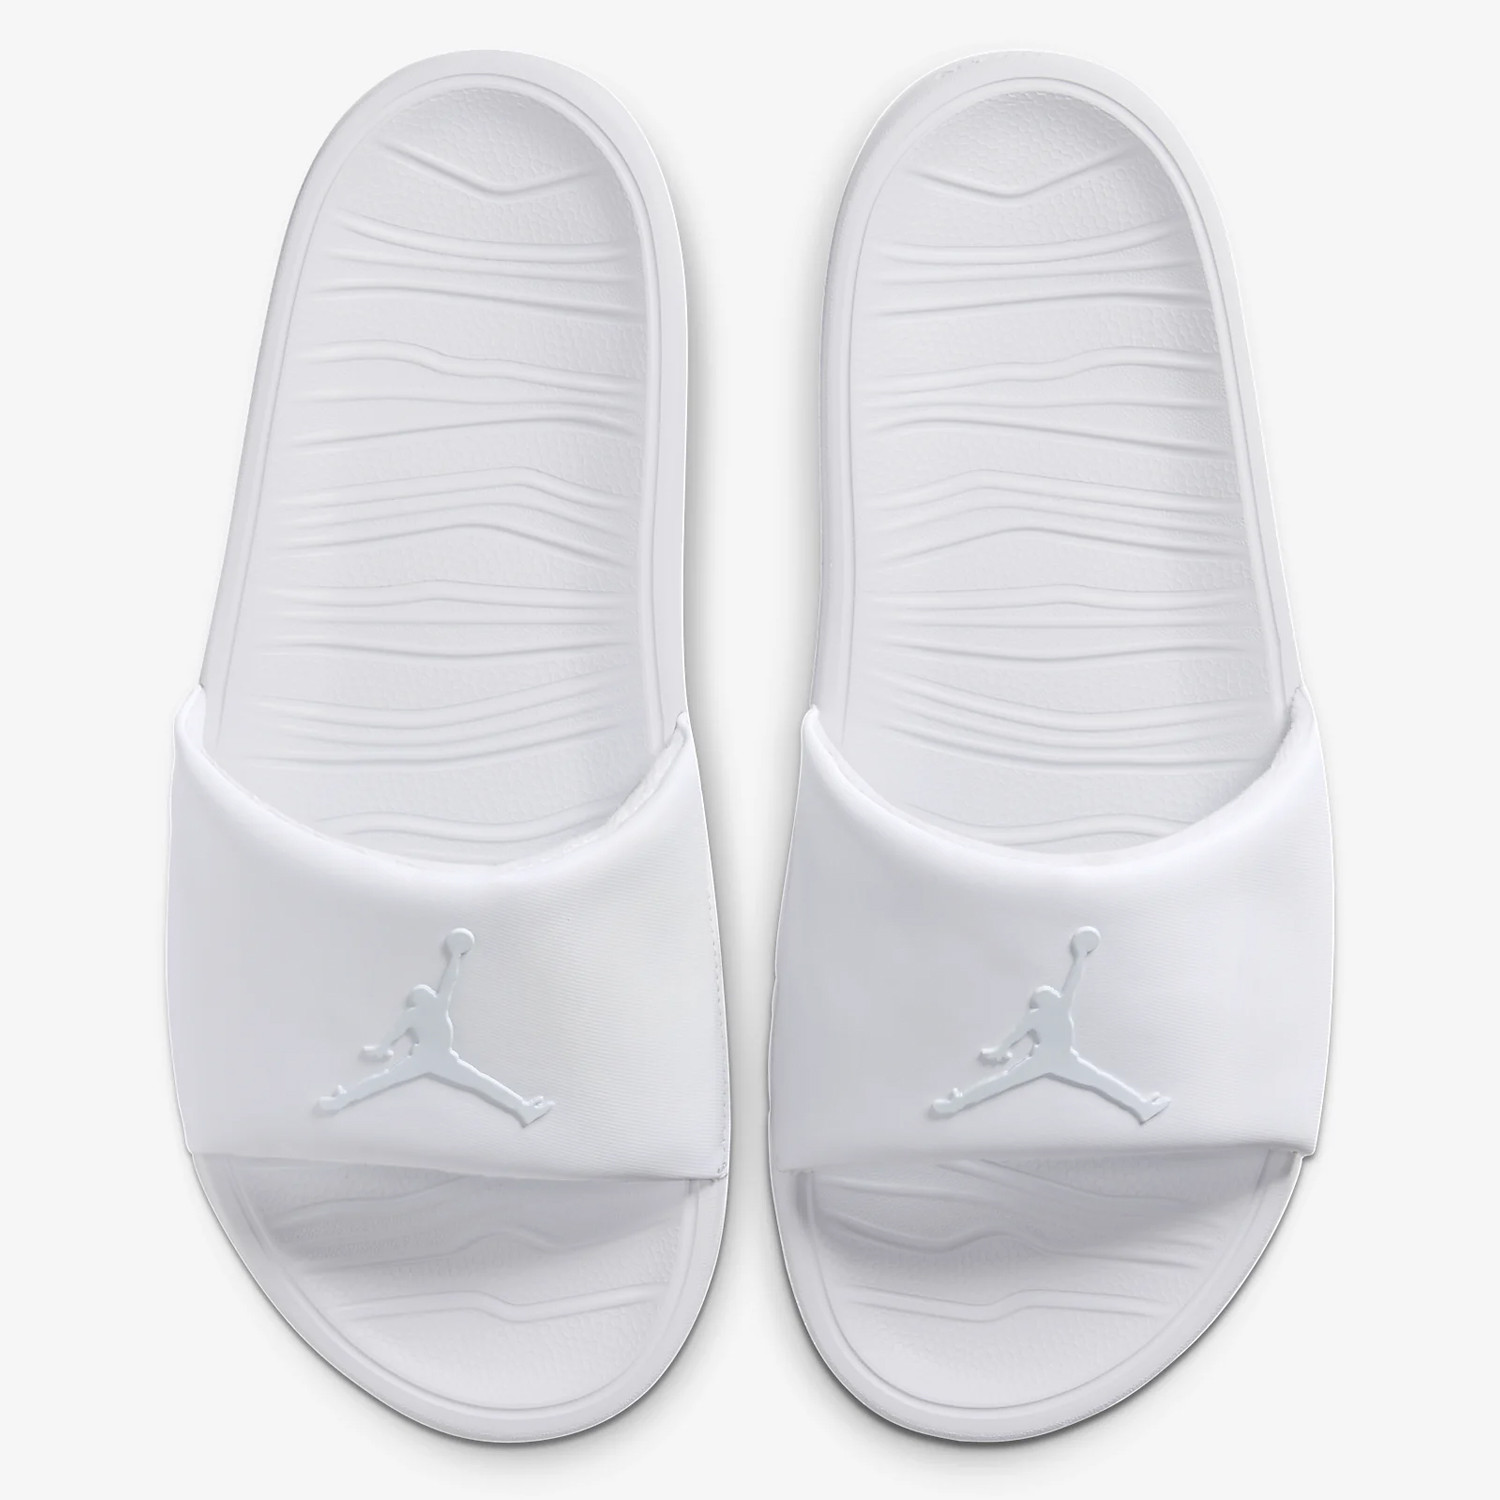 Jordan Break Men's Slides (9000053191_1597)